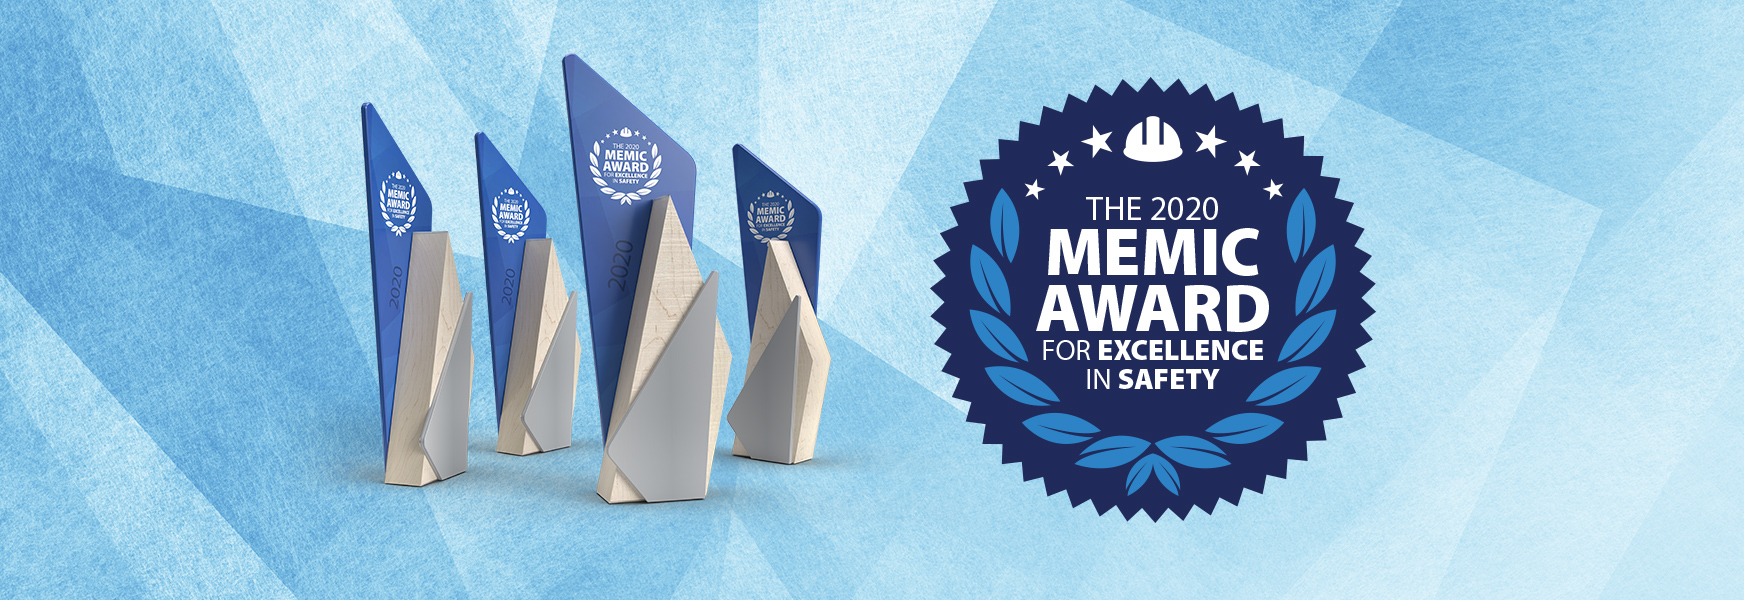 MEMIC Safety Award